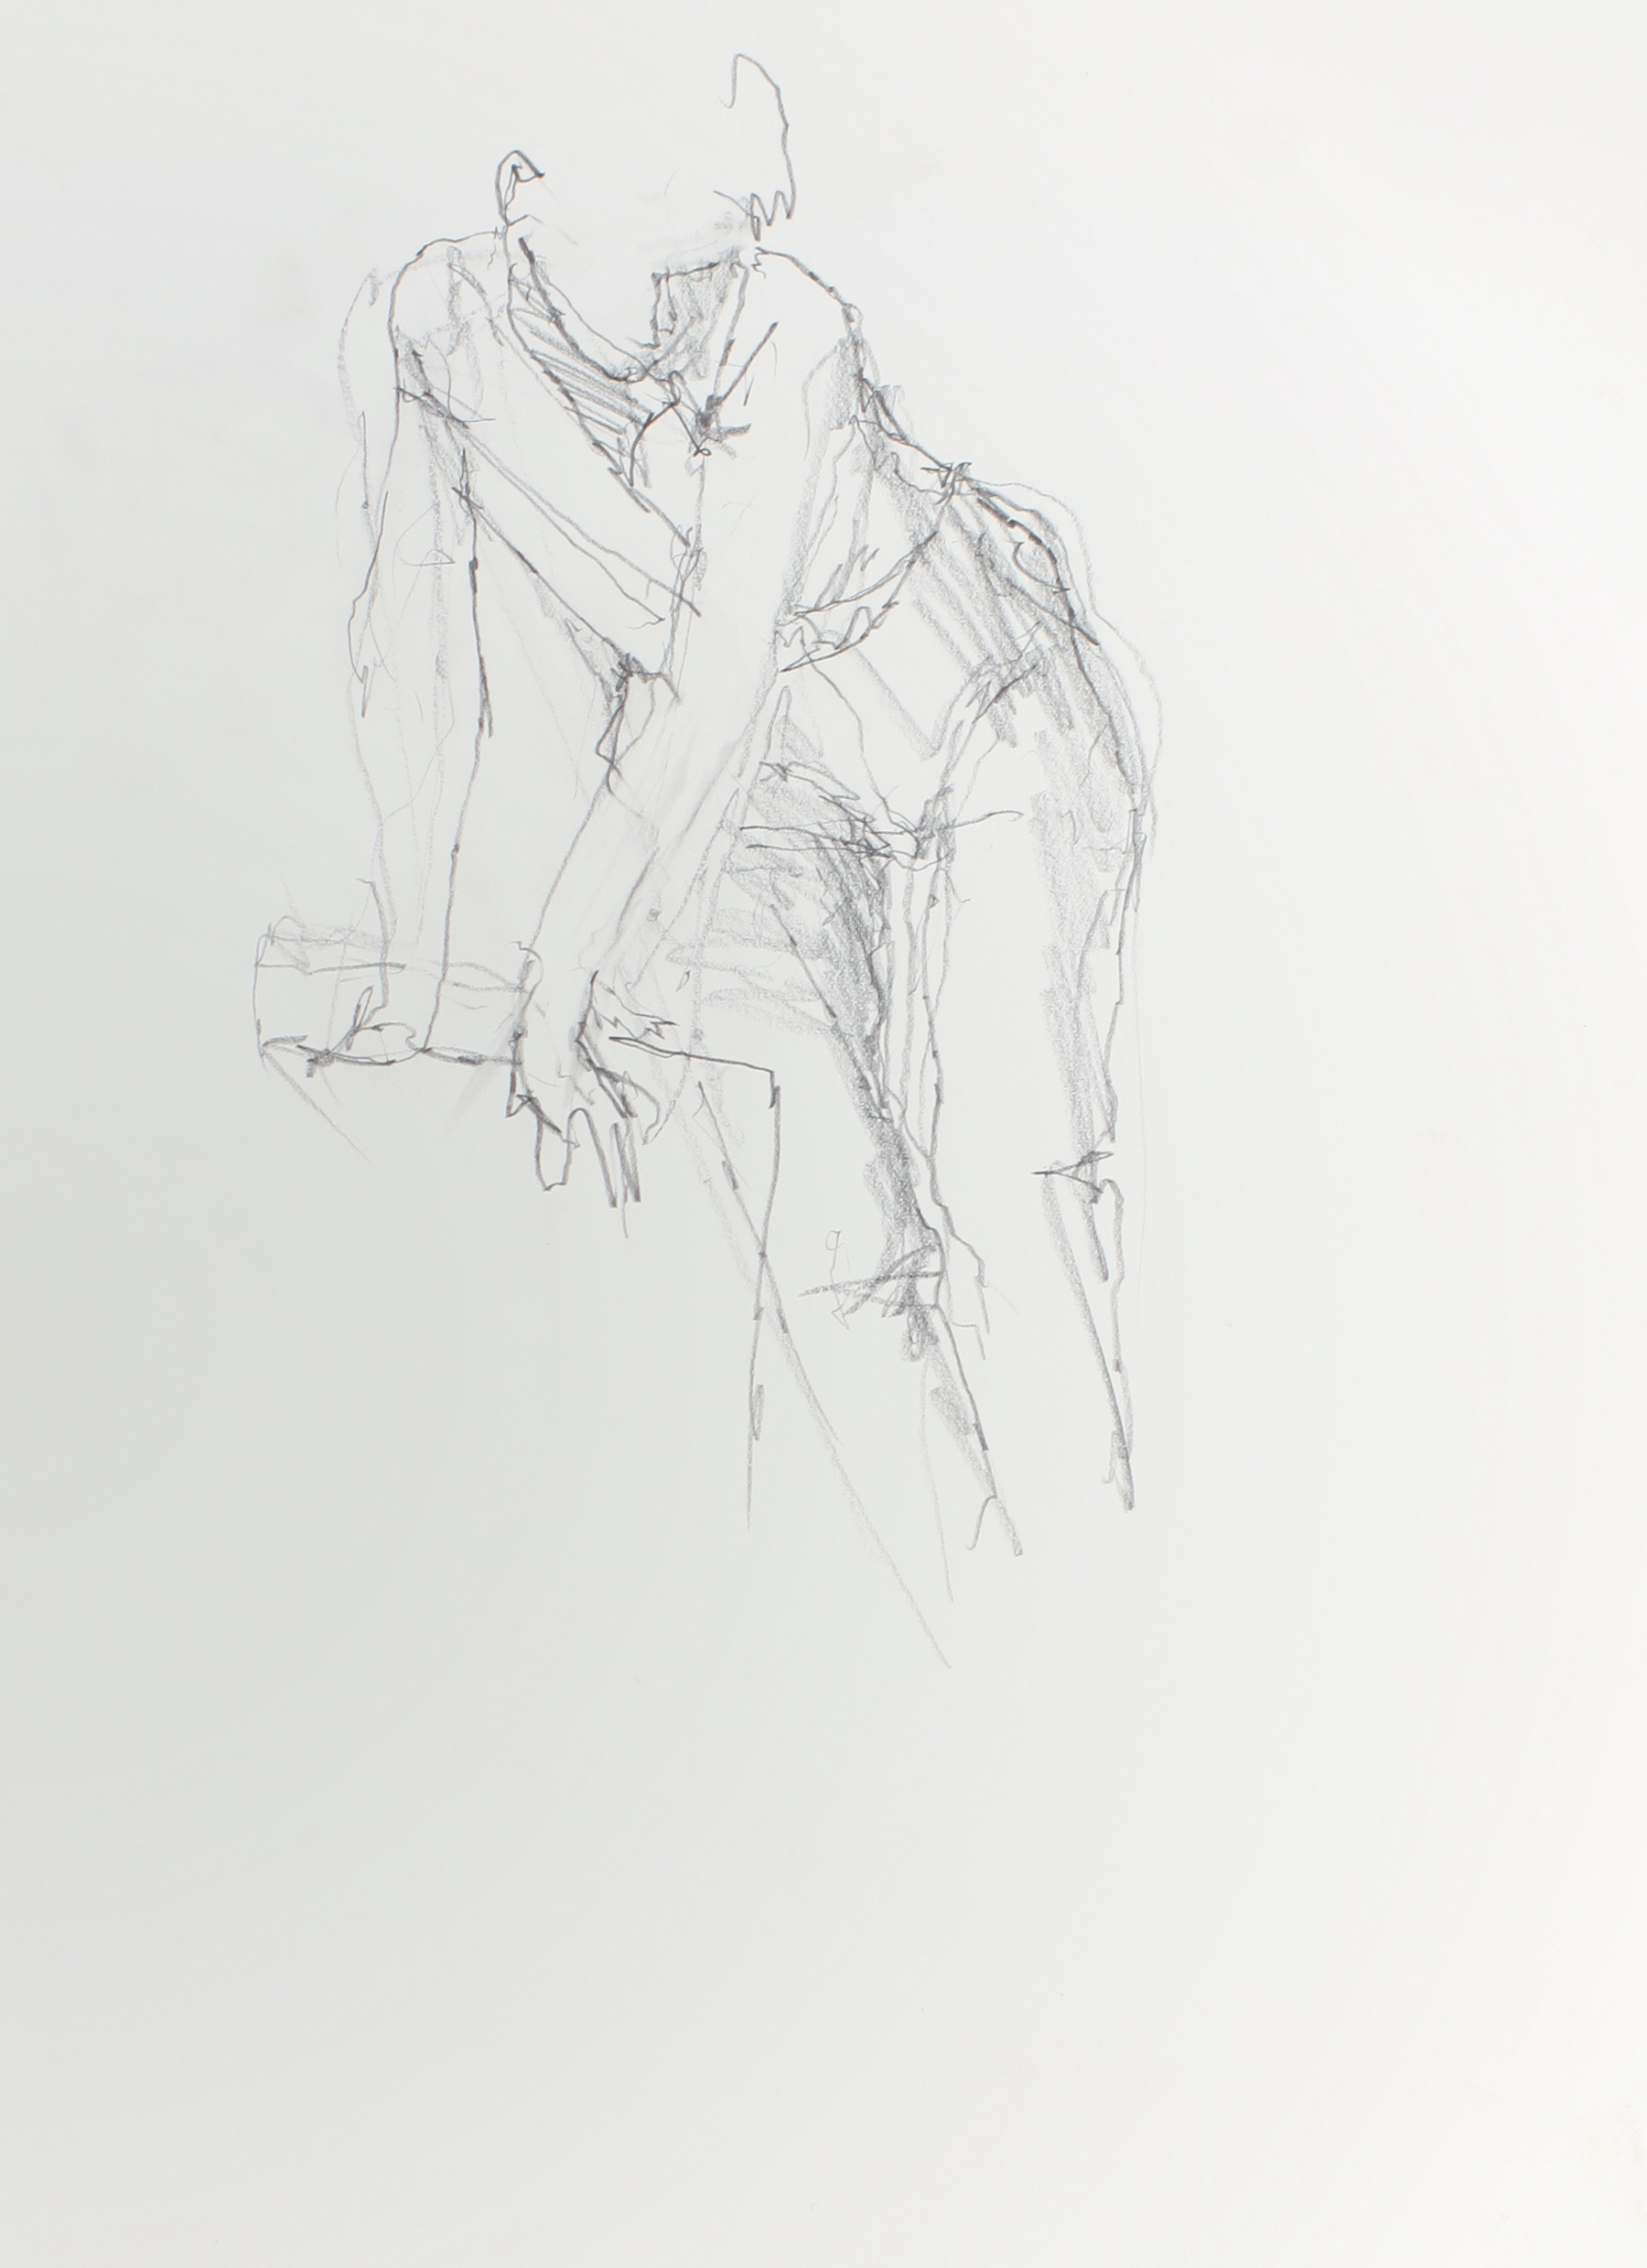 1990s_Figure_Leaning_on_Chair_pencil_on_paper_15x11in_WPF633.jpg